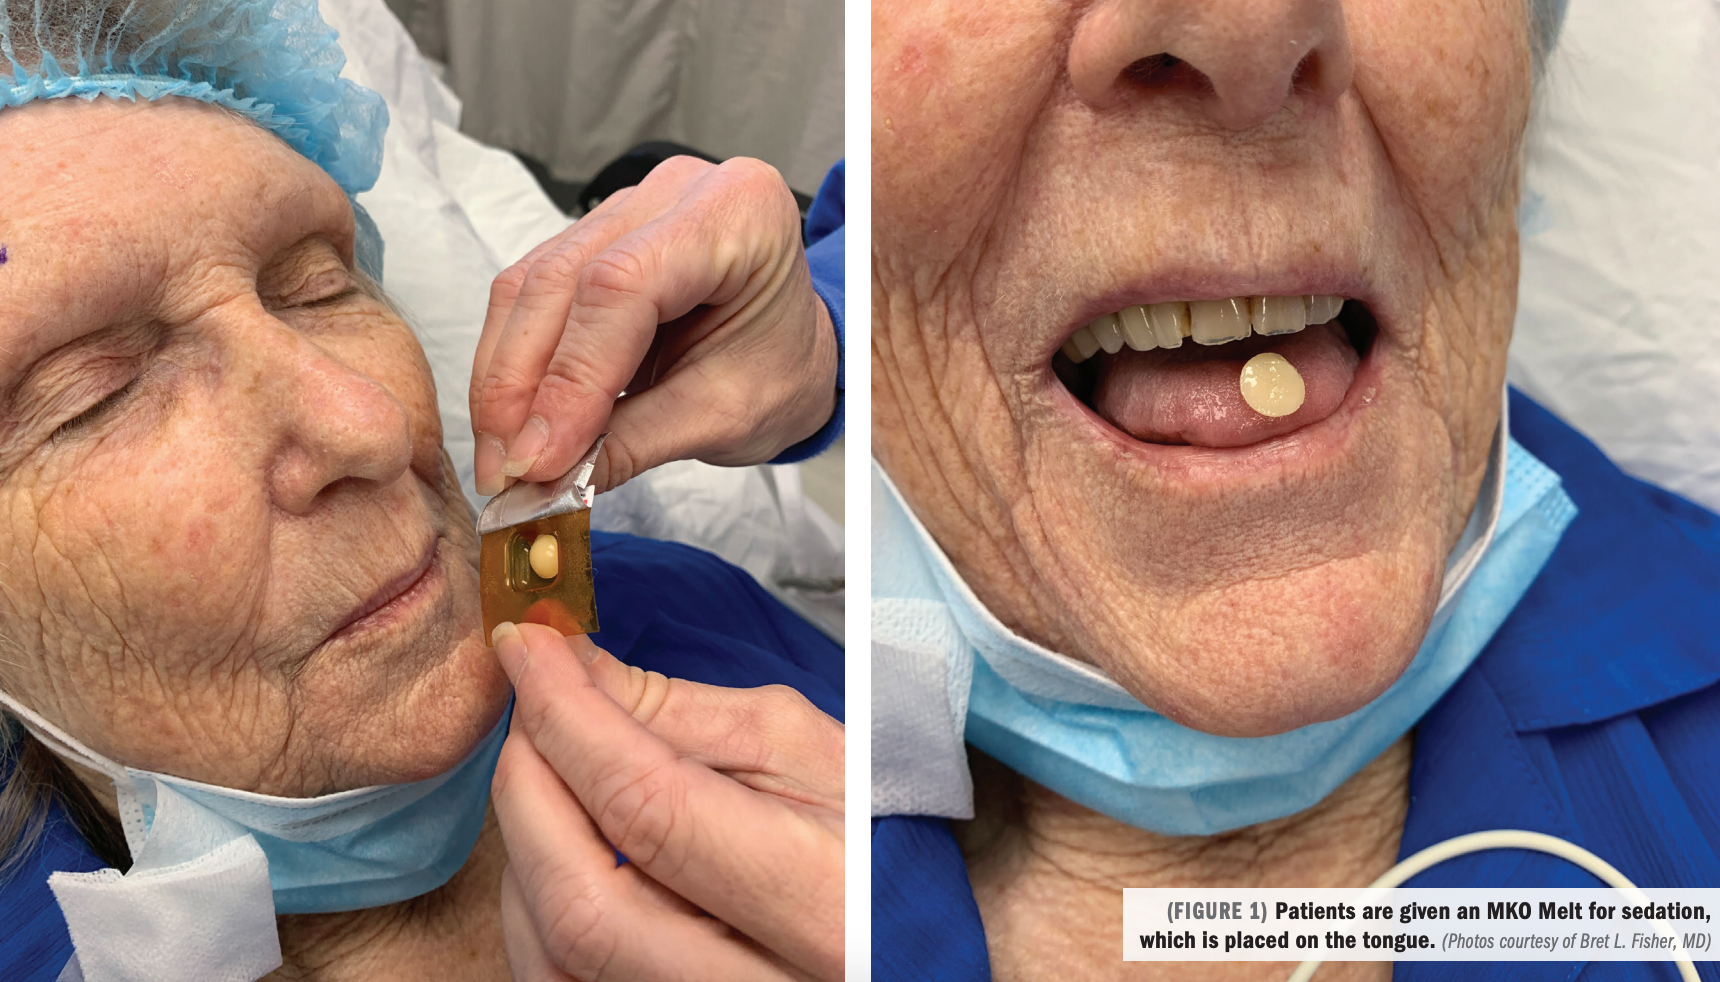 Comparable conscious sedation methods address individual patient needs